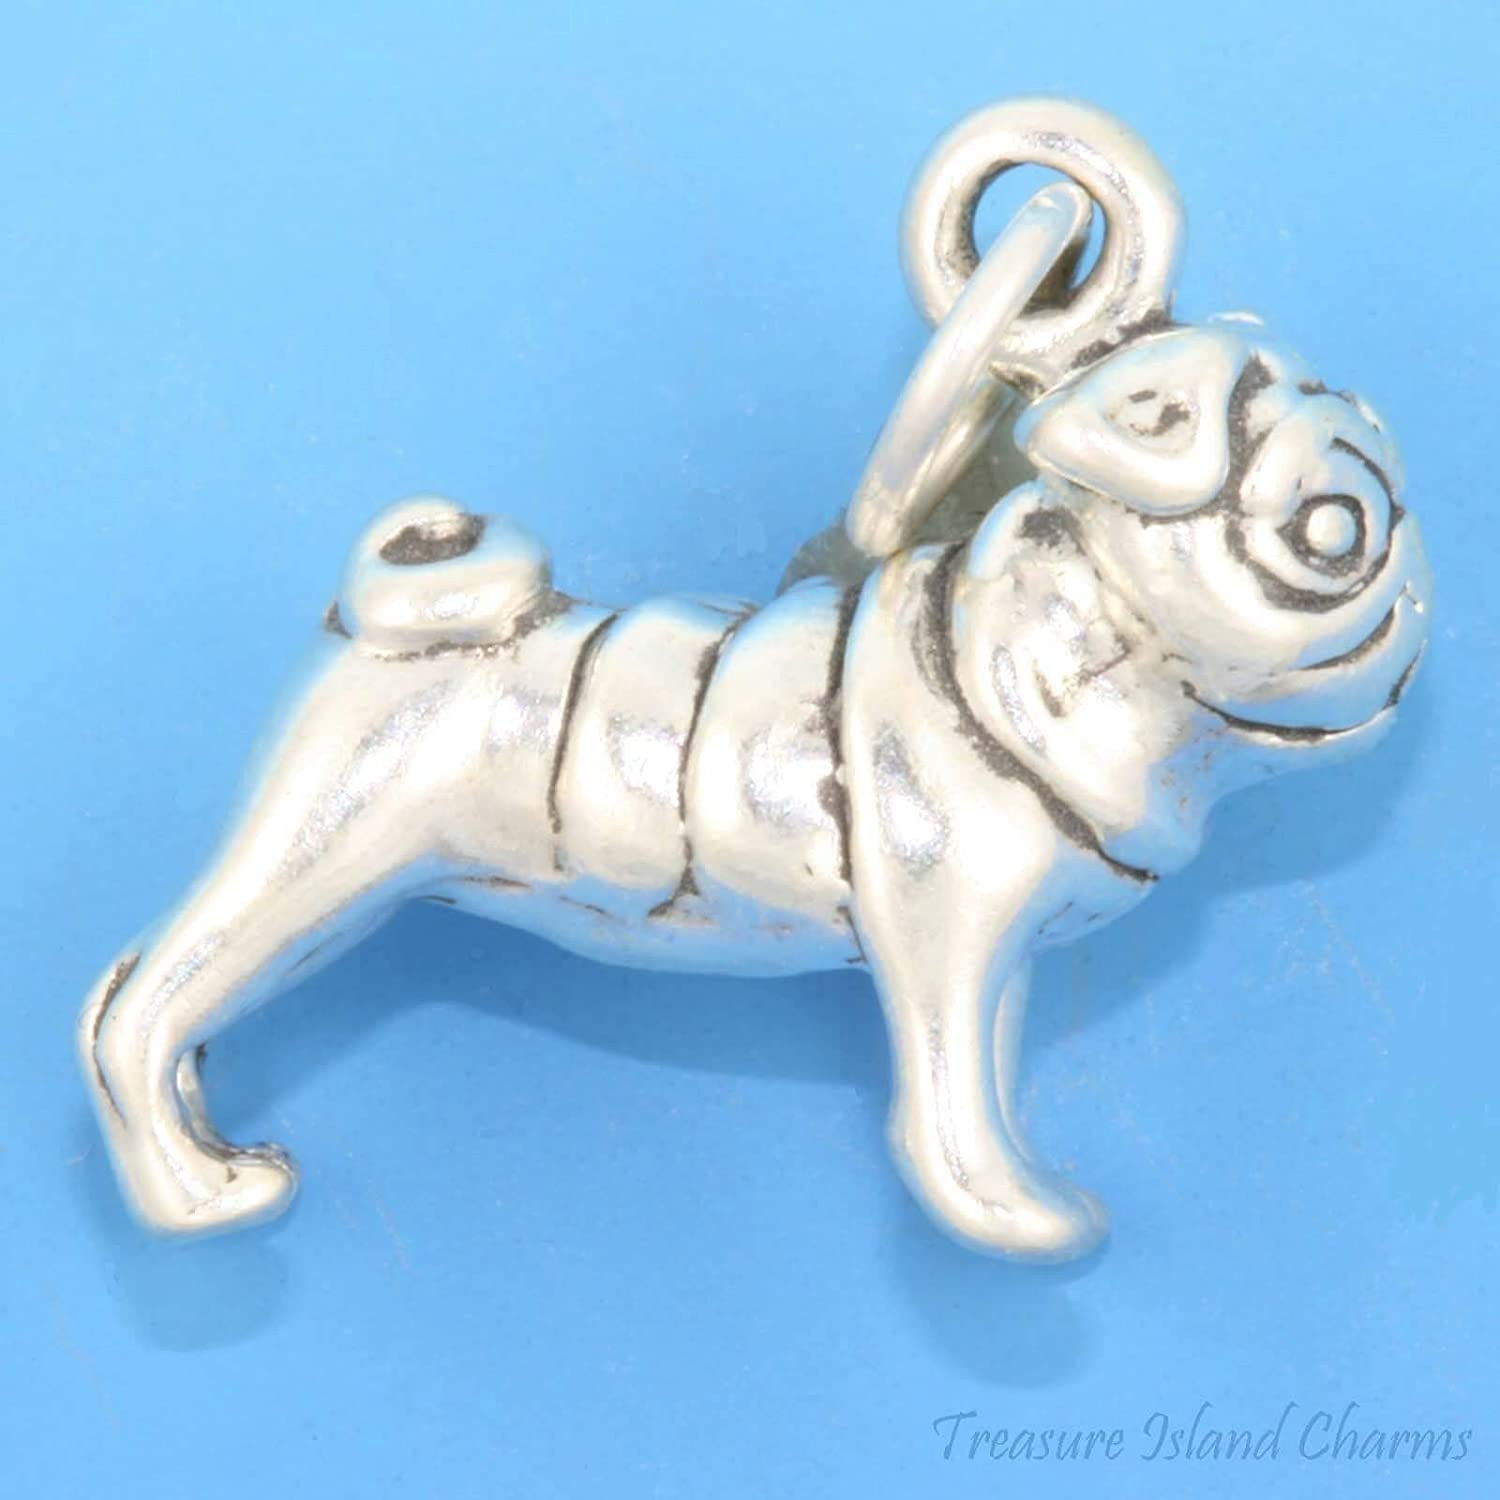 Charm Pendant Supply - Jewelry Chinese Bracelet Making Pug DIY quality Max 64% OFF assurance